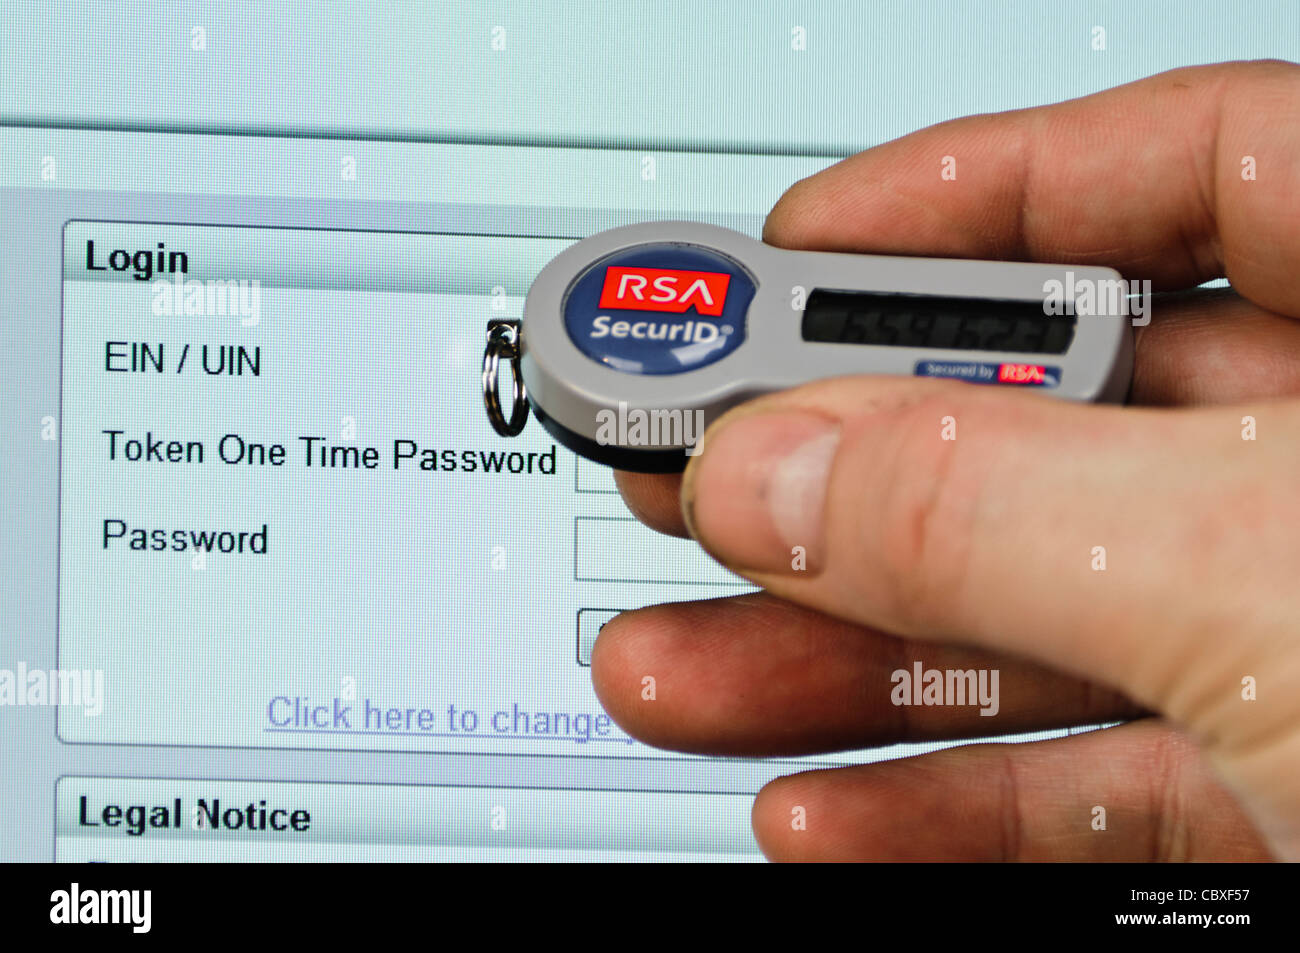 Man uses SecurID token to log into a website needing a userID, Passcode and Password - Stock Image